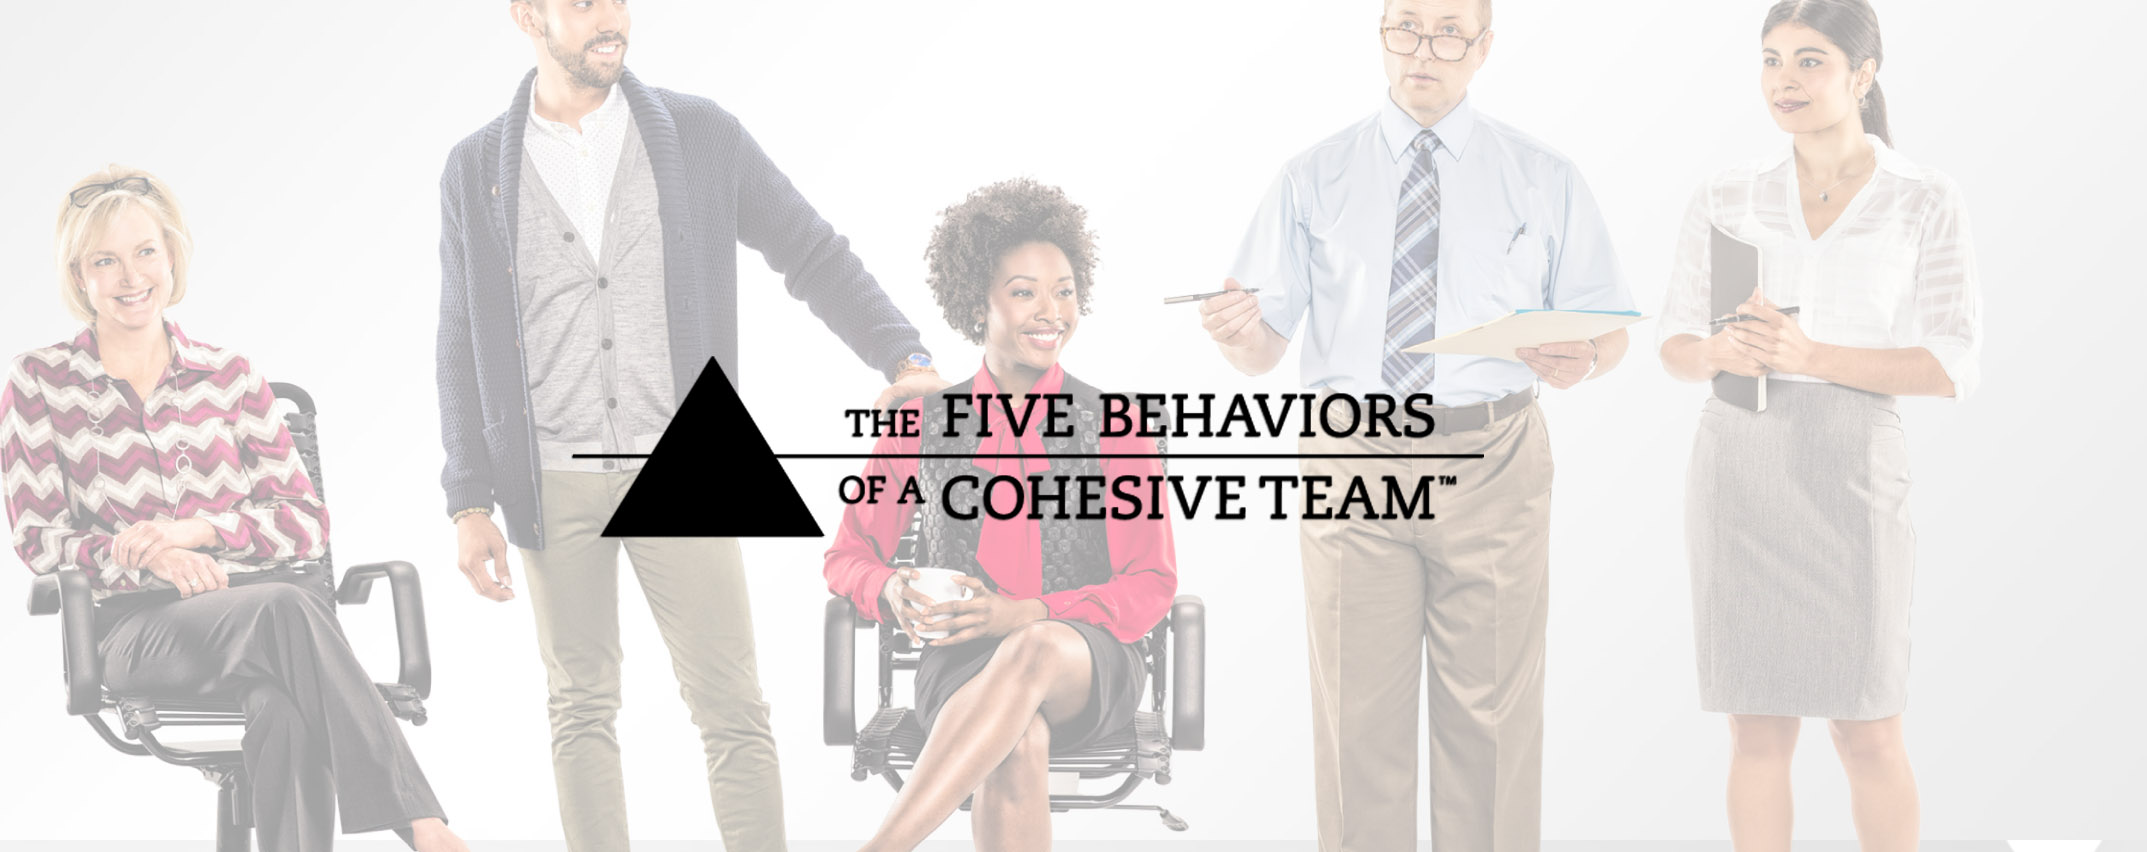 Engagement with The Five Behaviors™